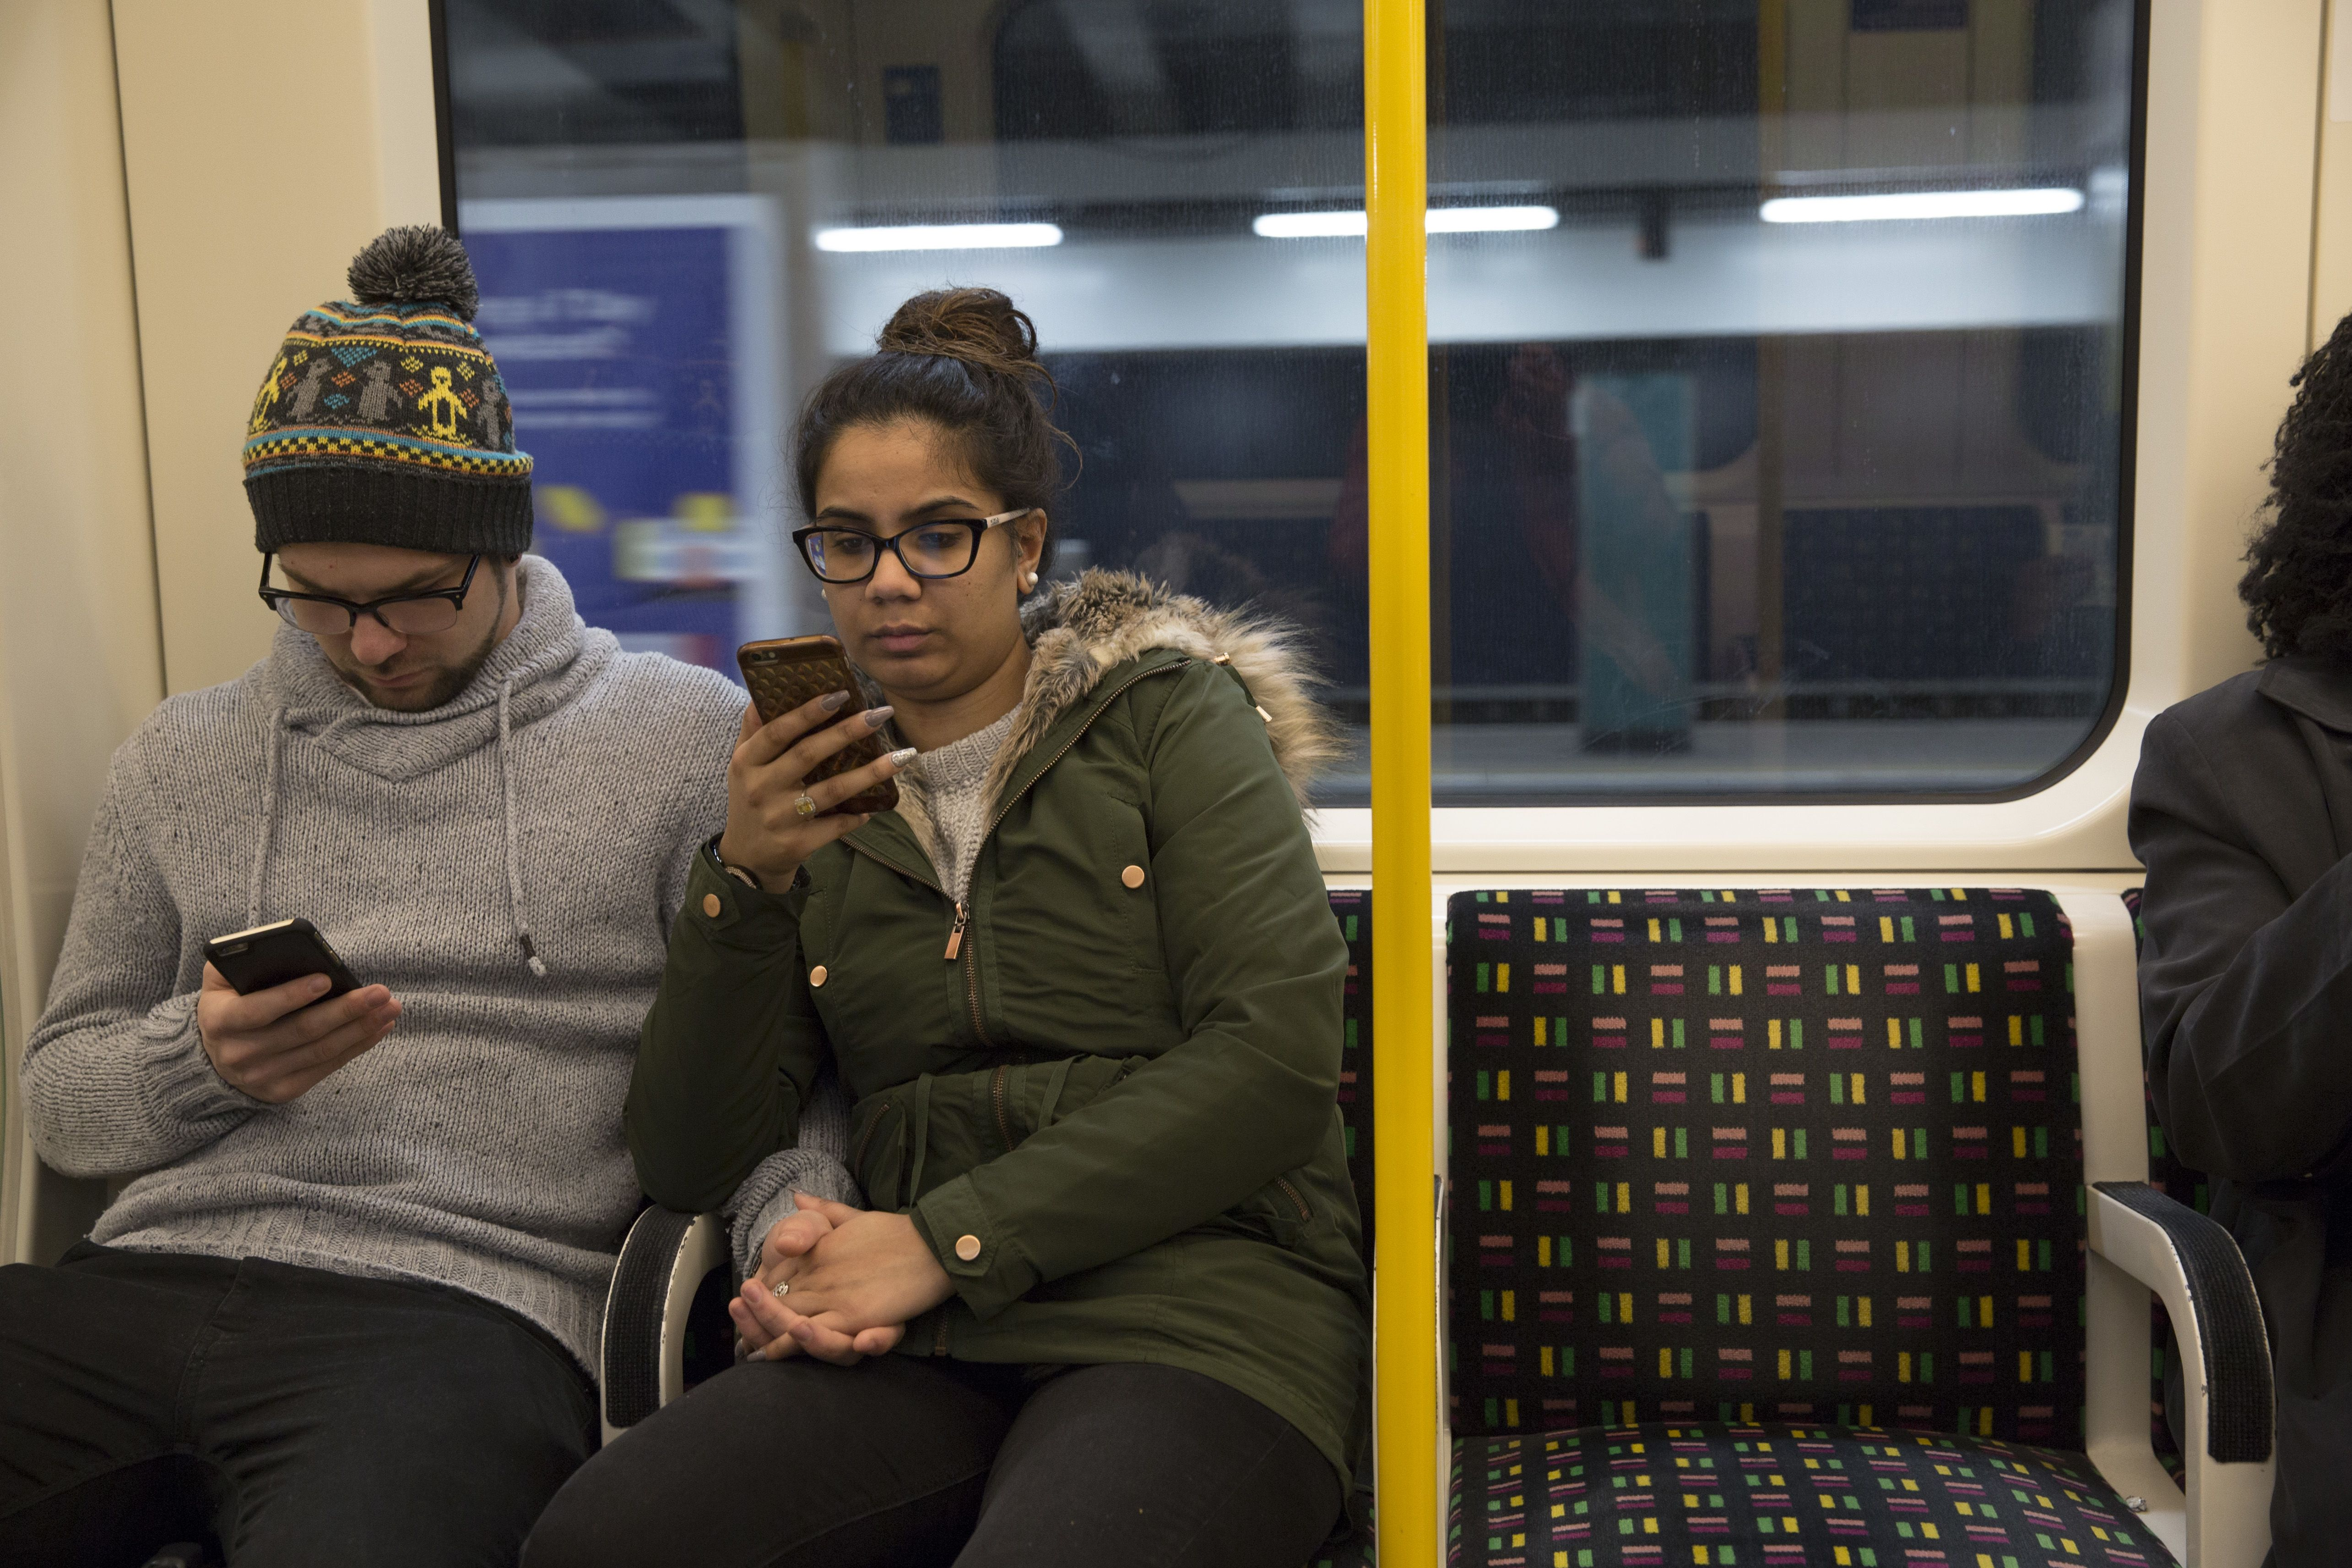 The world famous London Underground will get 4G services next year